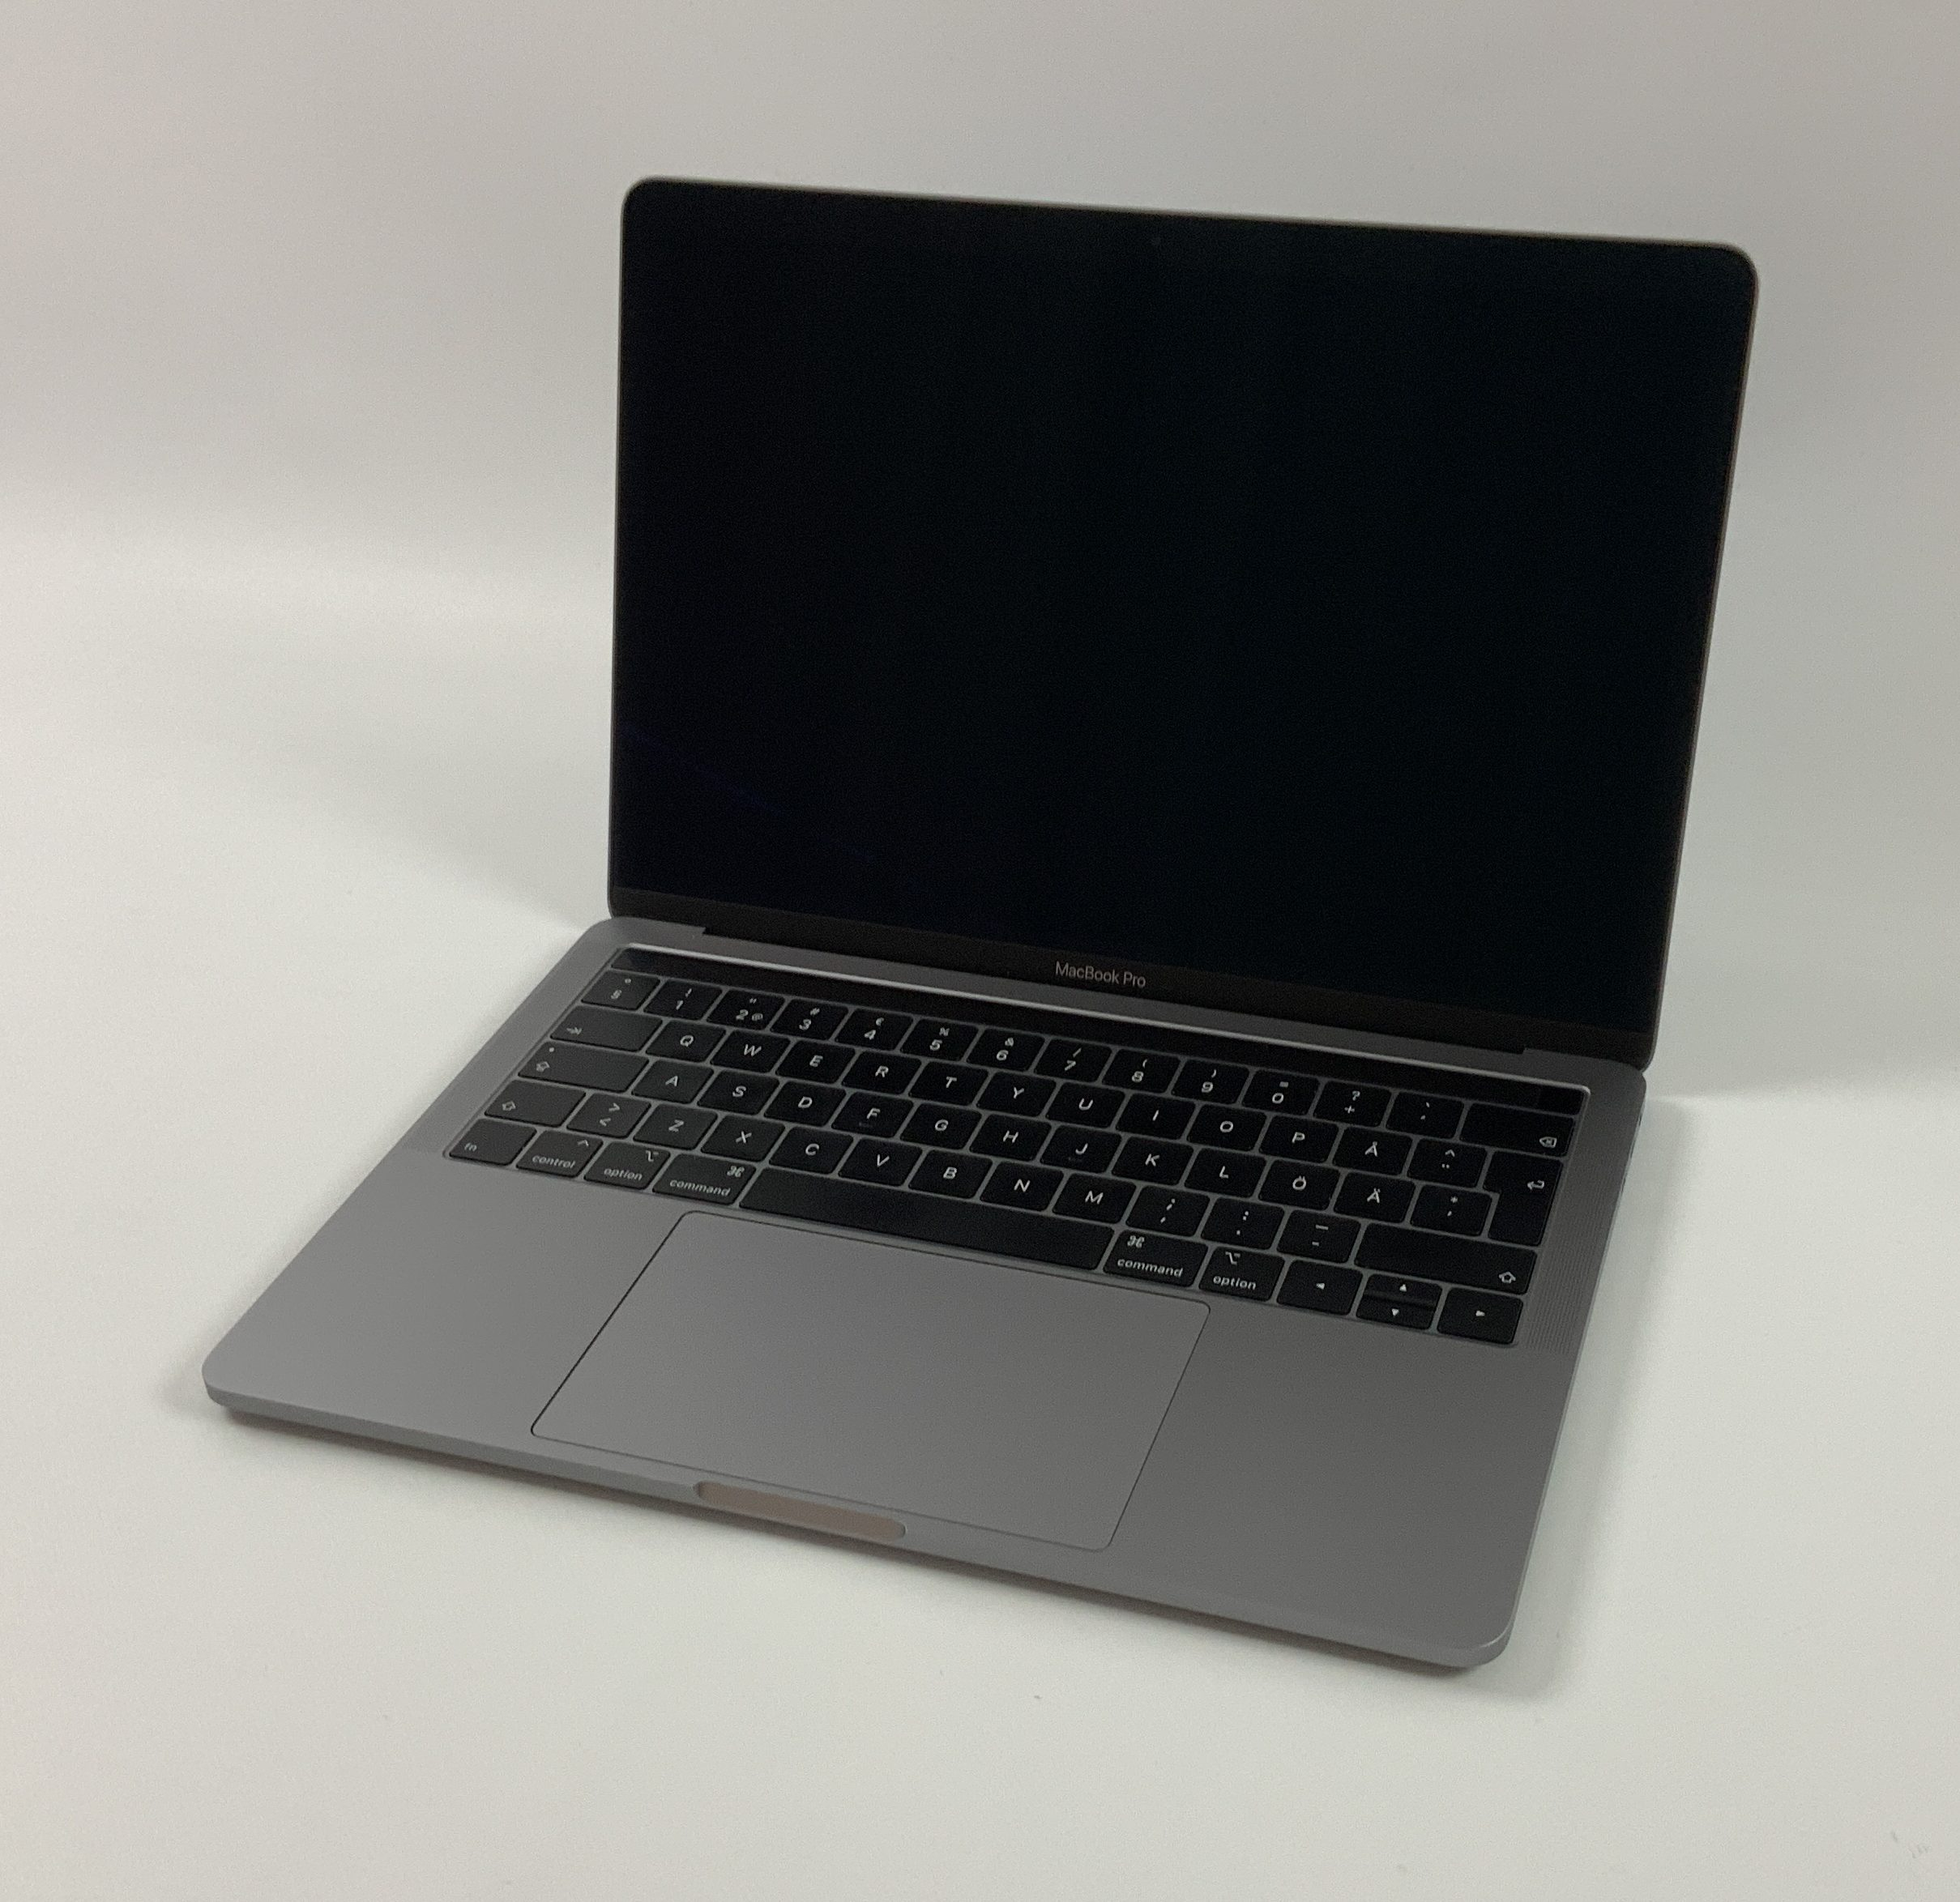 "MacBook Pro 13"" 4TBT Mid 2018 (Intel Quad-Core i5 2.3 GHz 8 GB RAM 256 GB SSD), Space Gray, Intel Quad-Core i5 2.3 GHz, 8 GB RAM, 256 GB SSD, image 1"